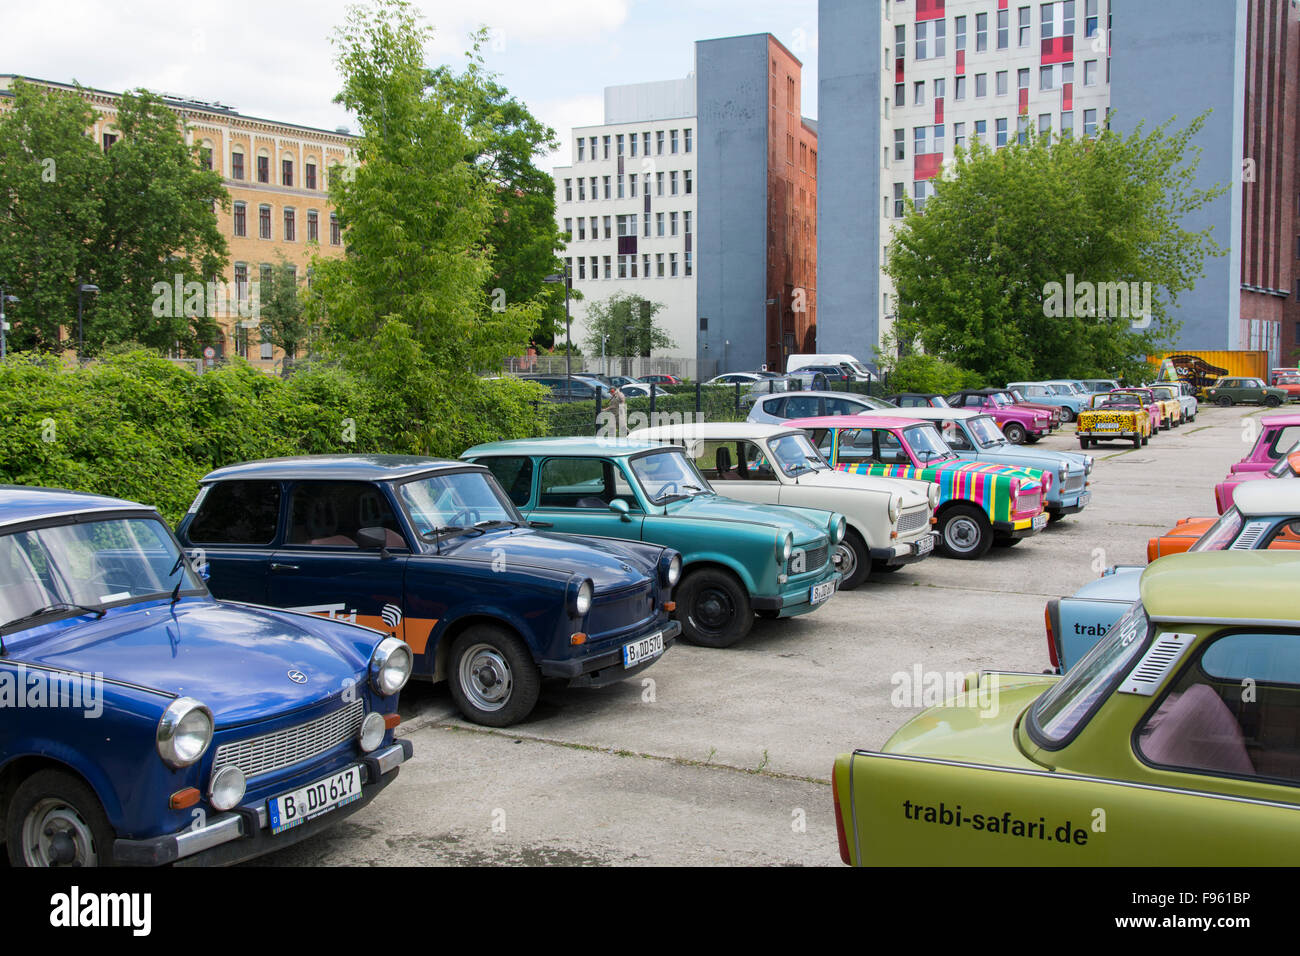 trabi rental cars berlin germany stock photo royalty free image 91716570 alamy. Black Bedroom Furniture Sets. Home Design Ideas